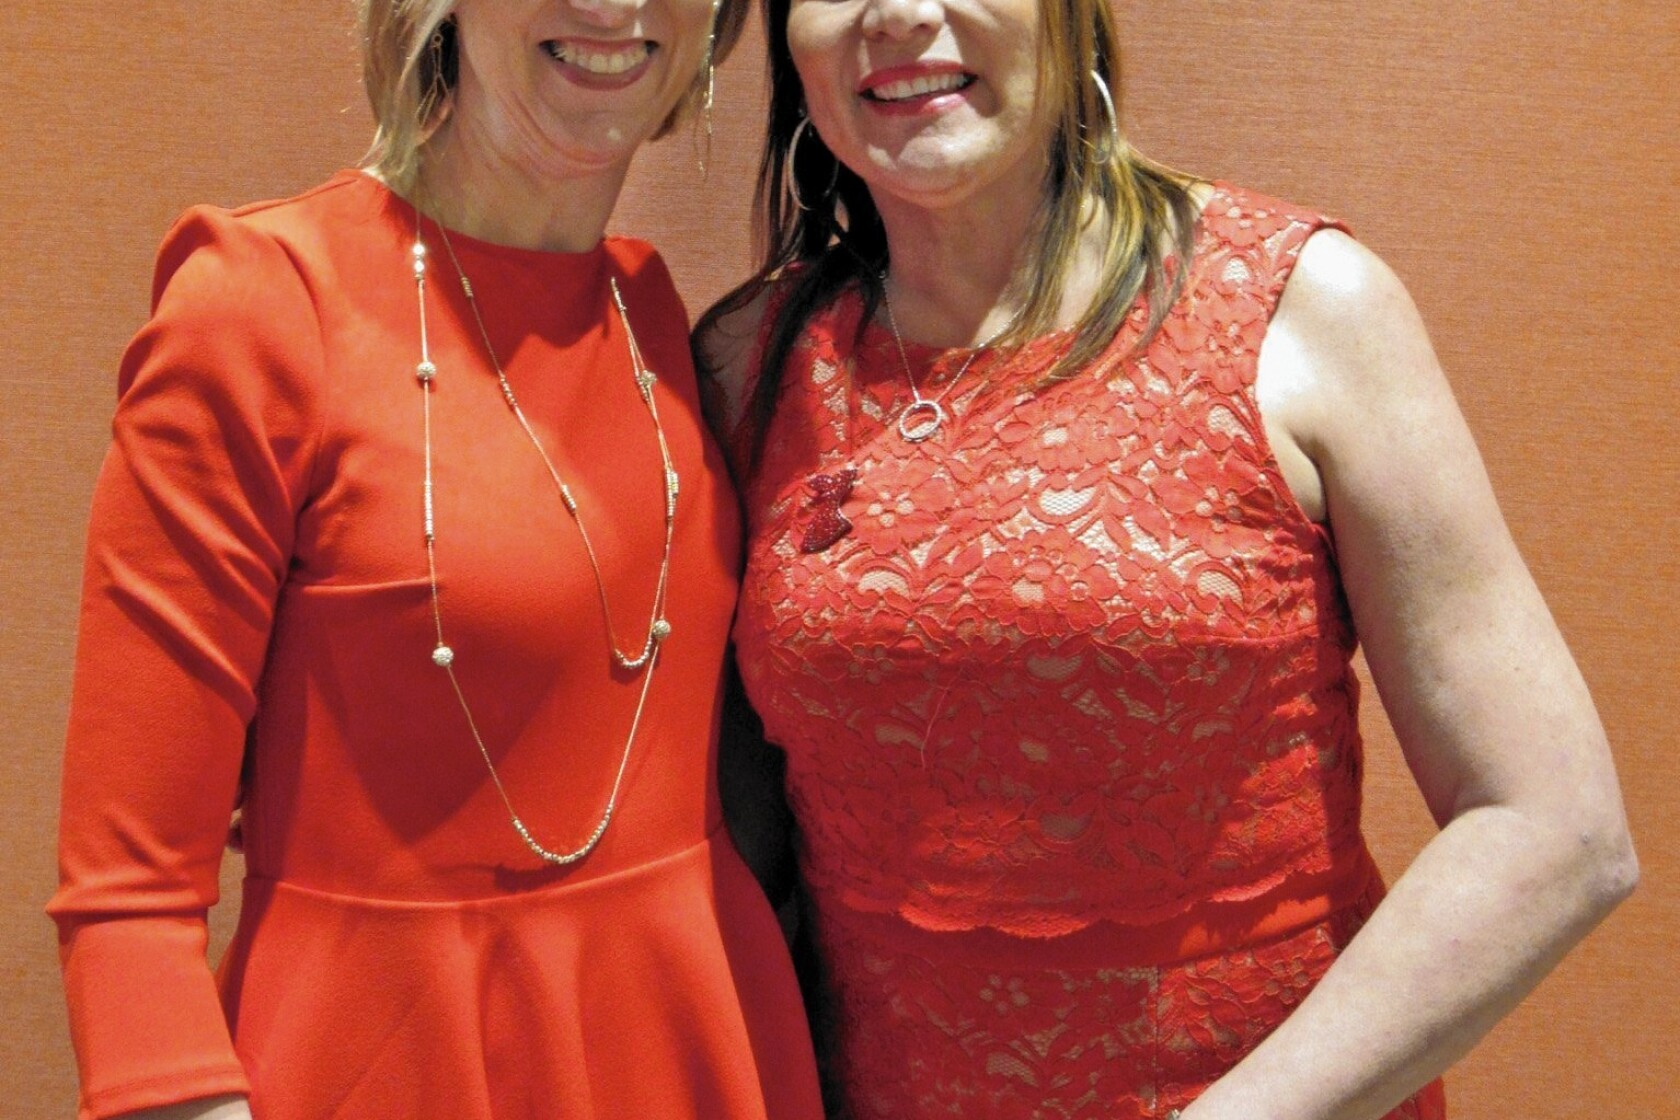 The Crowd: 'Go Red' lunch held in the name of women's heart